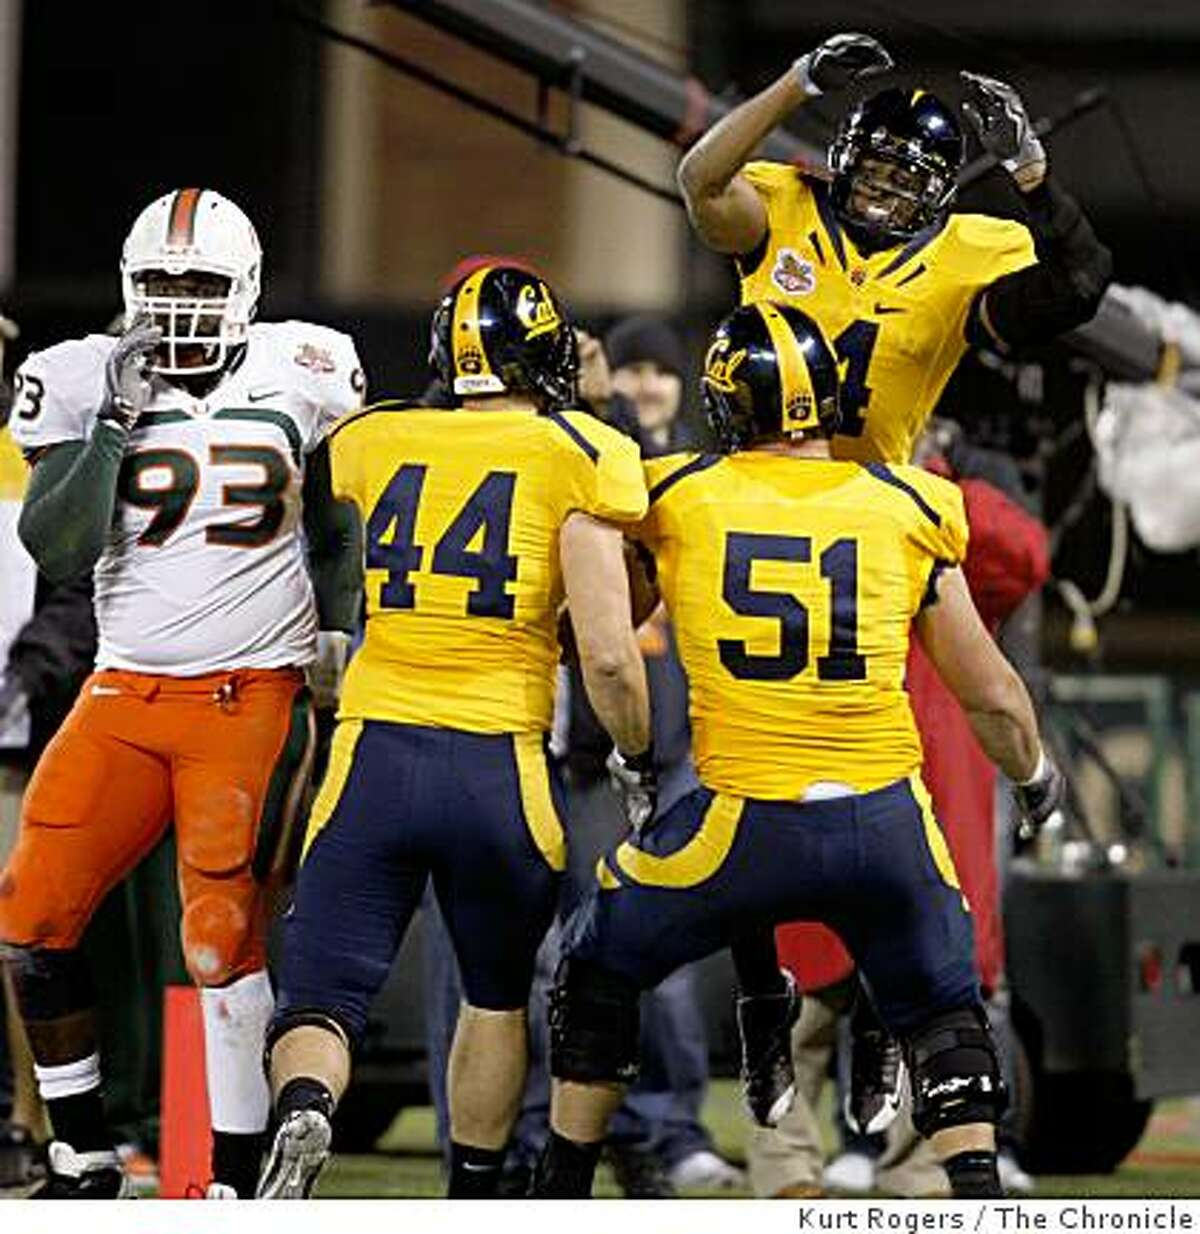 Cal's Jahvid Best (4) celebrates in the endzone with teammates Tad Smith (44) and Alex Mack (51) as Miami's Dwayne Hendricks (93) looks on after a first quarter touchdown in the Emerald Bowl at AT&T park in San Francisco, Calif., on Saturday, December 27, 2008.